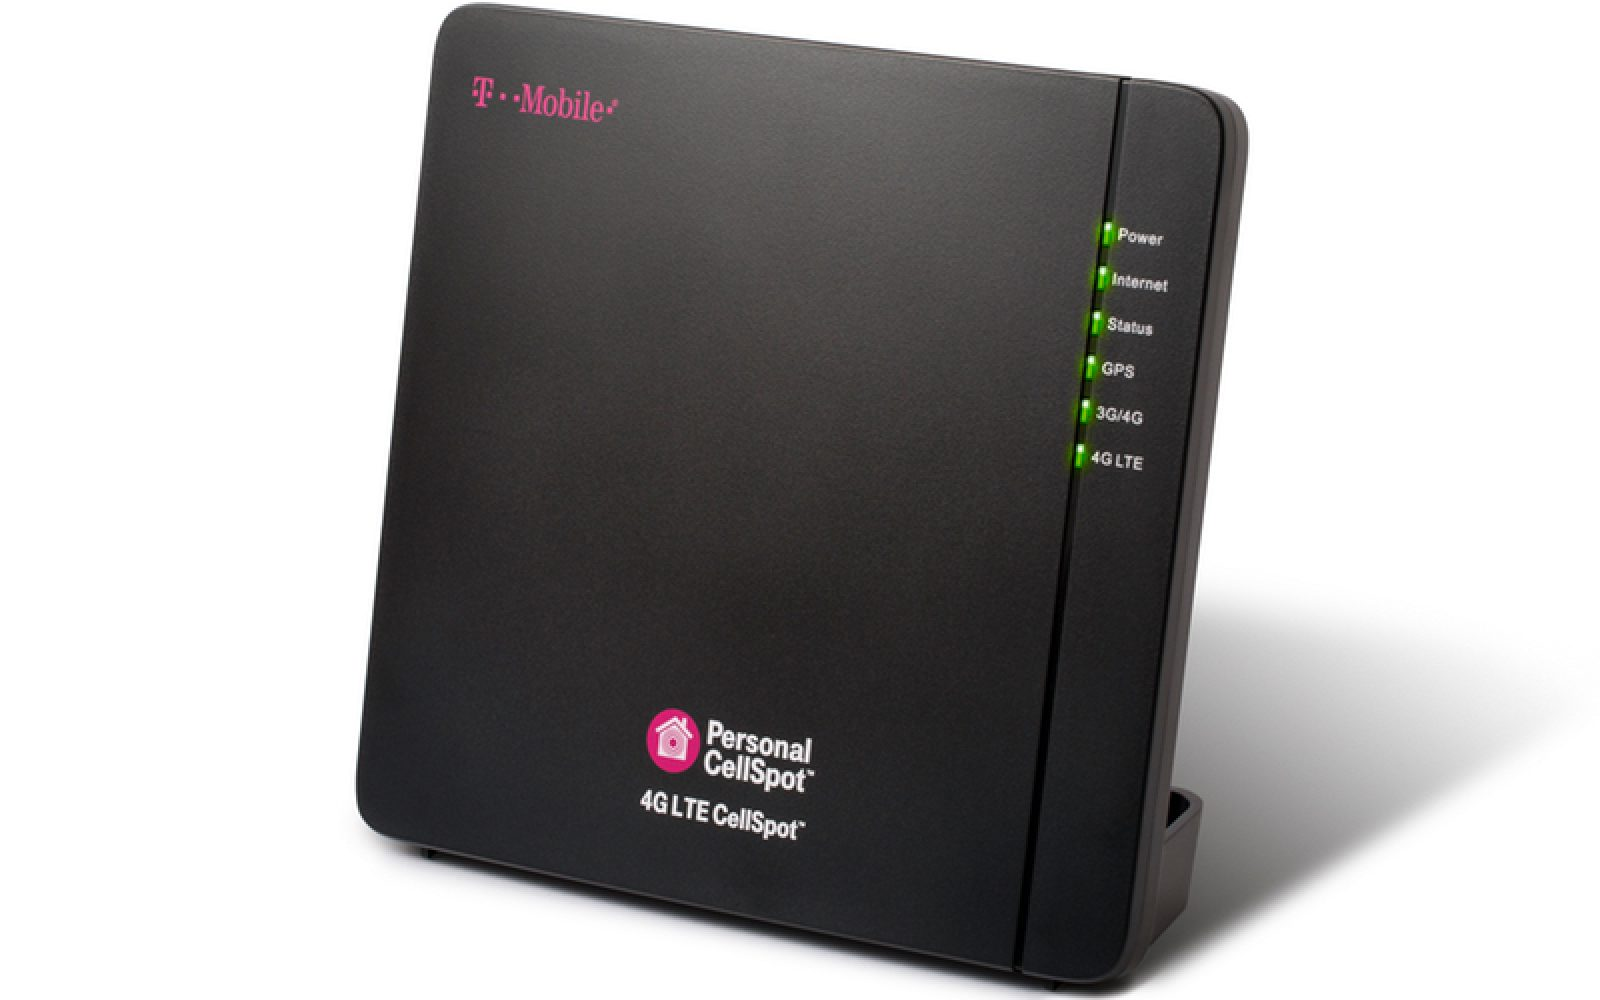 T-Mobile announces new 4G LTE CellSpot, offering LTE signal from Wi